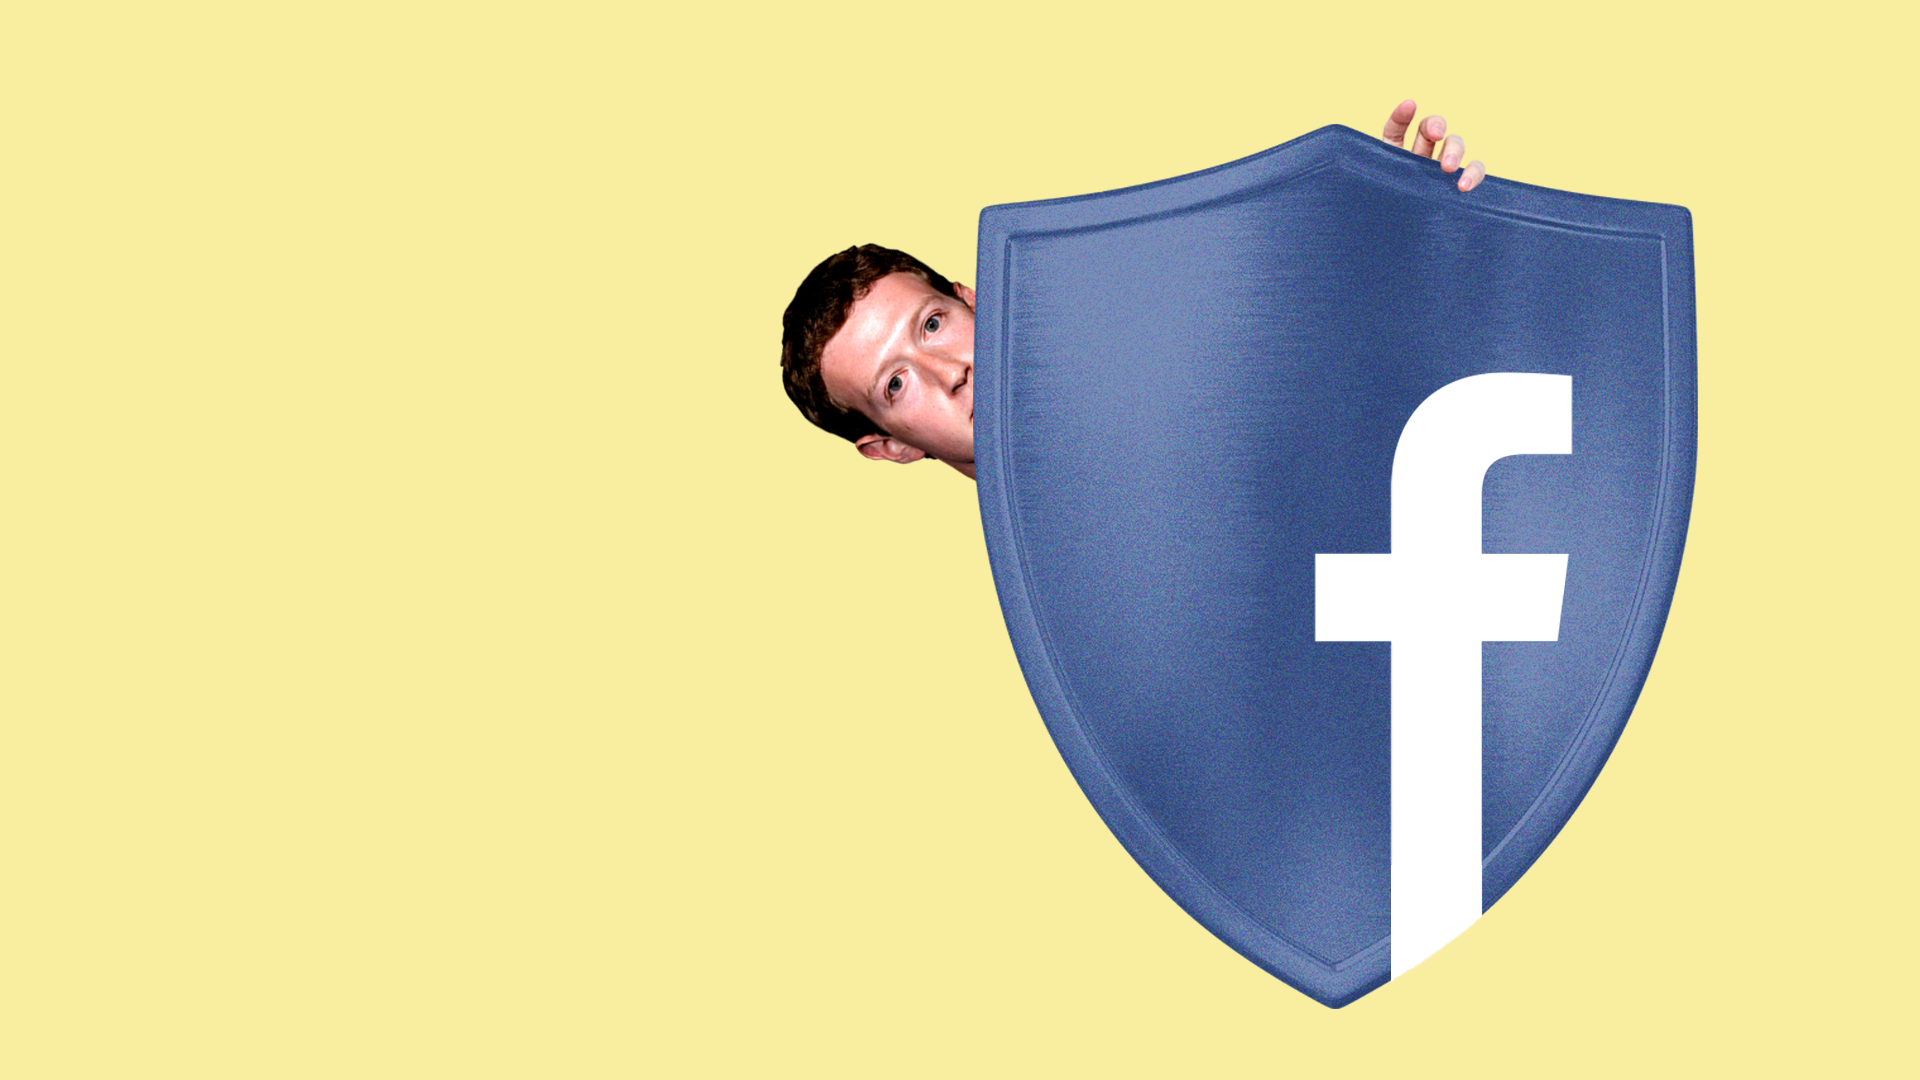 Illustration of Facebook CEO Mark Zuckerberg peeking out from behind a security shield